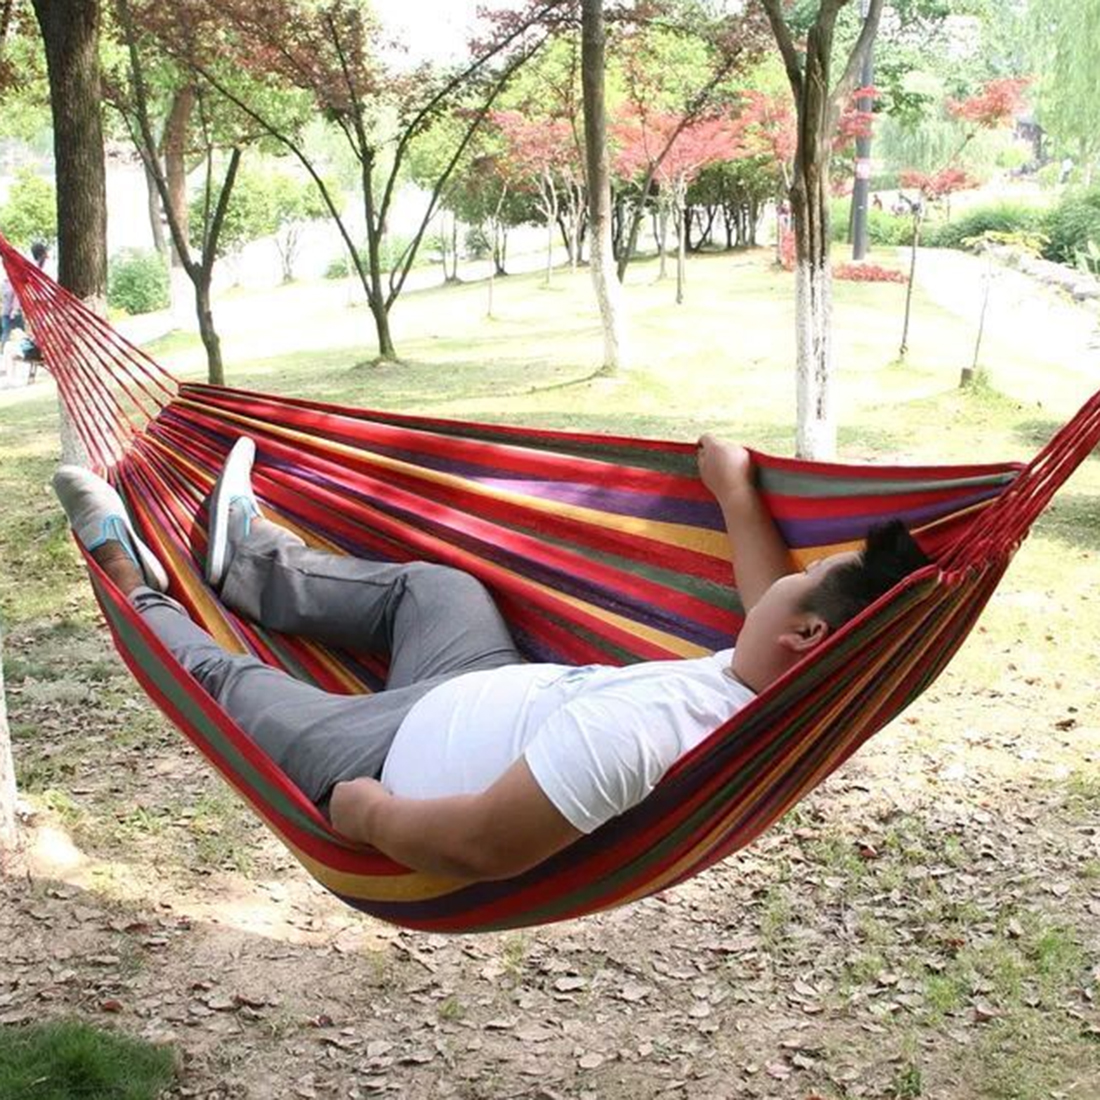 Outdoor hammock bed with cover - 280 150cm Portable Outdoor Hammock Leisure Traveling Camping Striped Canvas Hammock High Quality Garden Swing